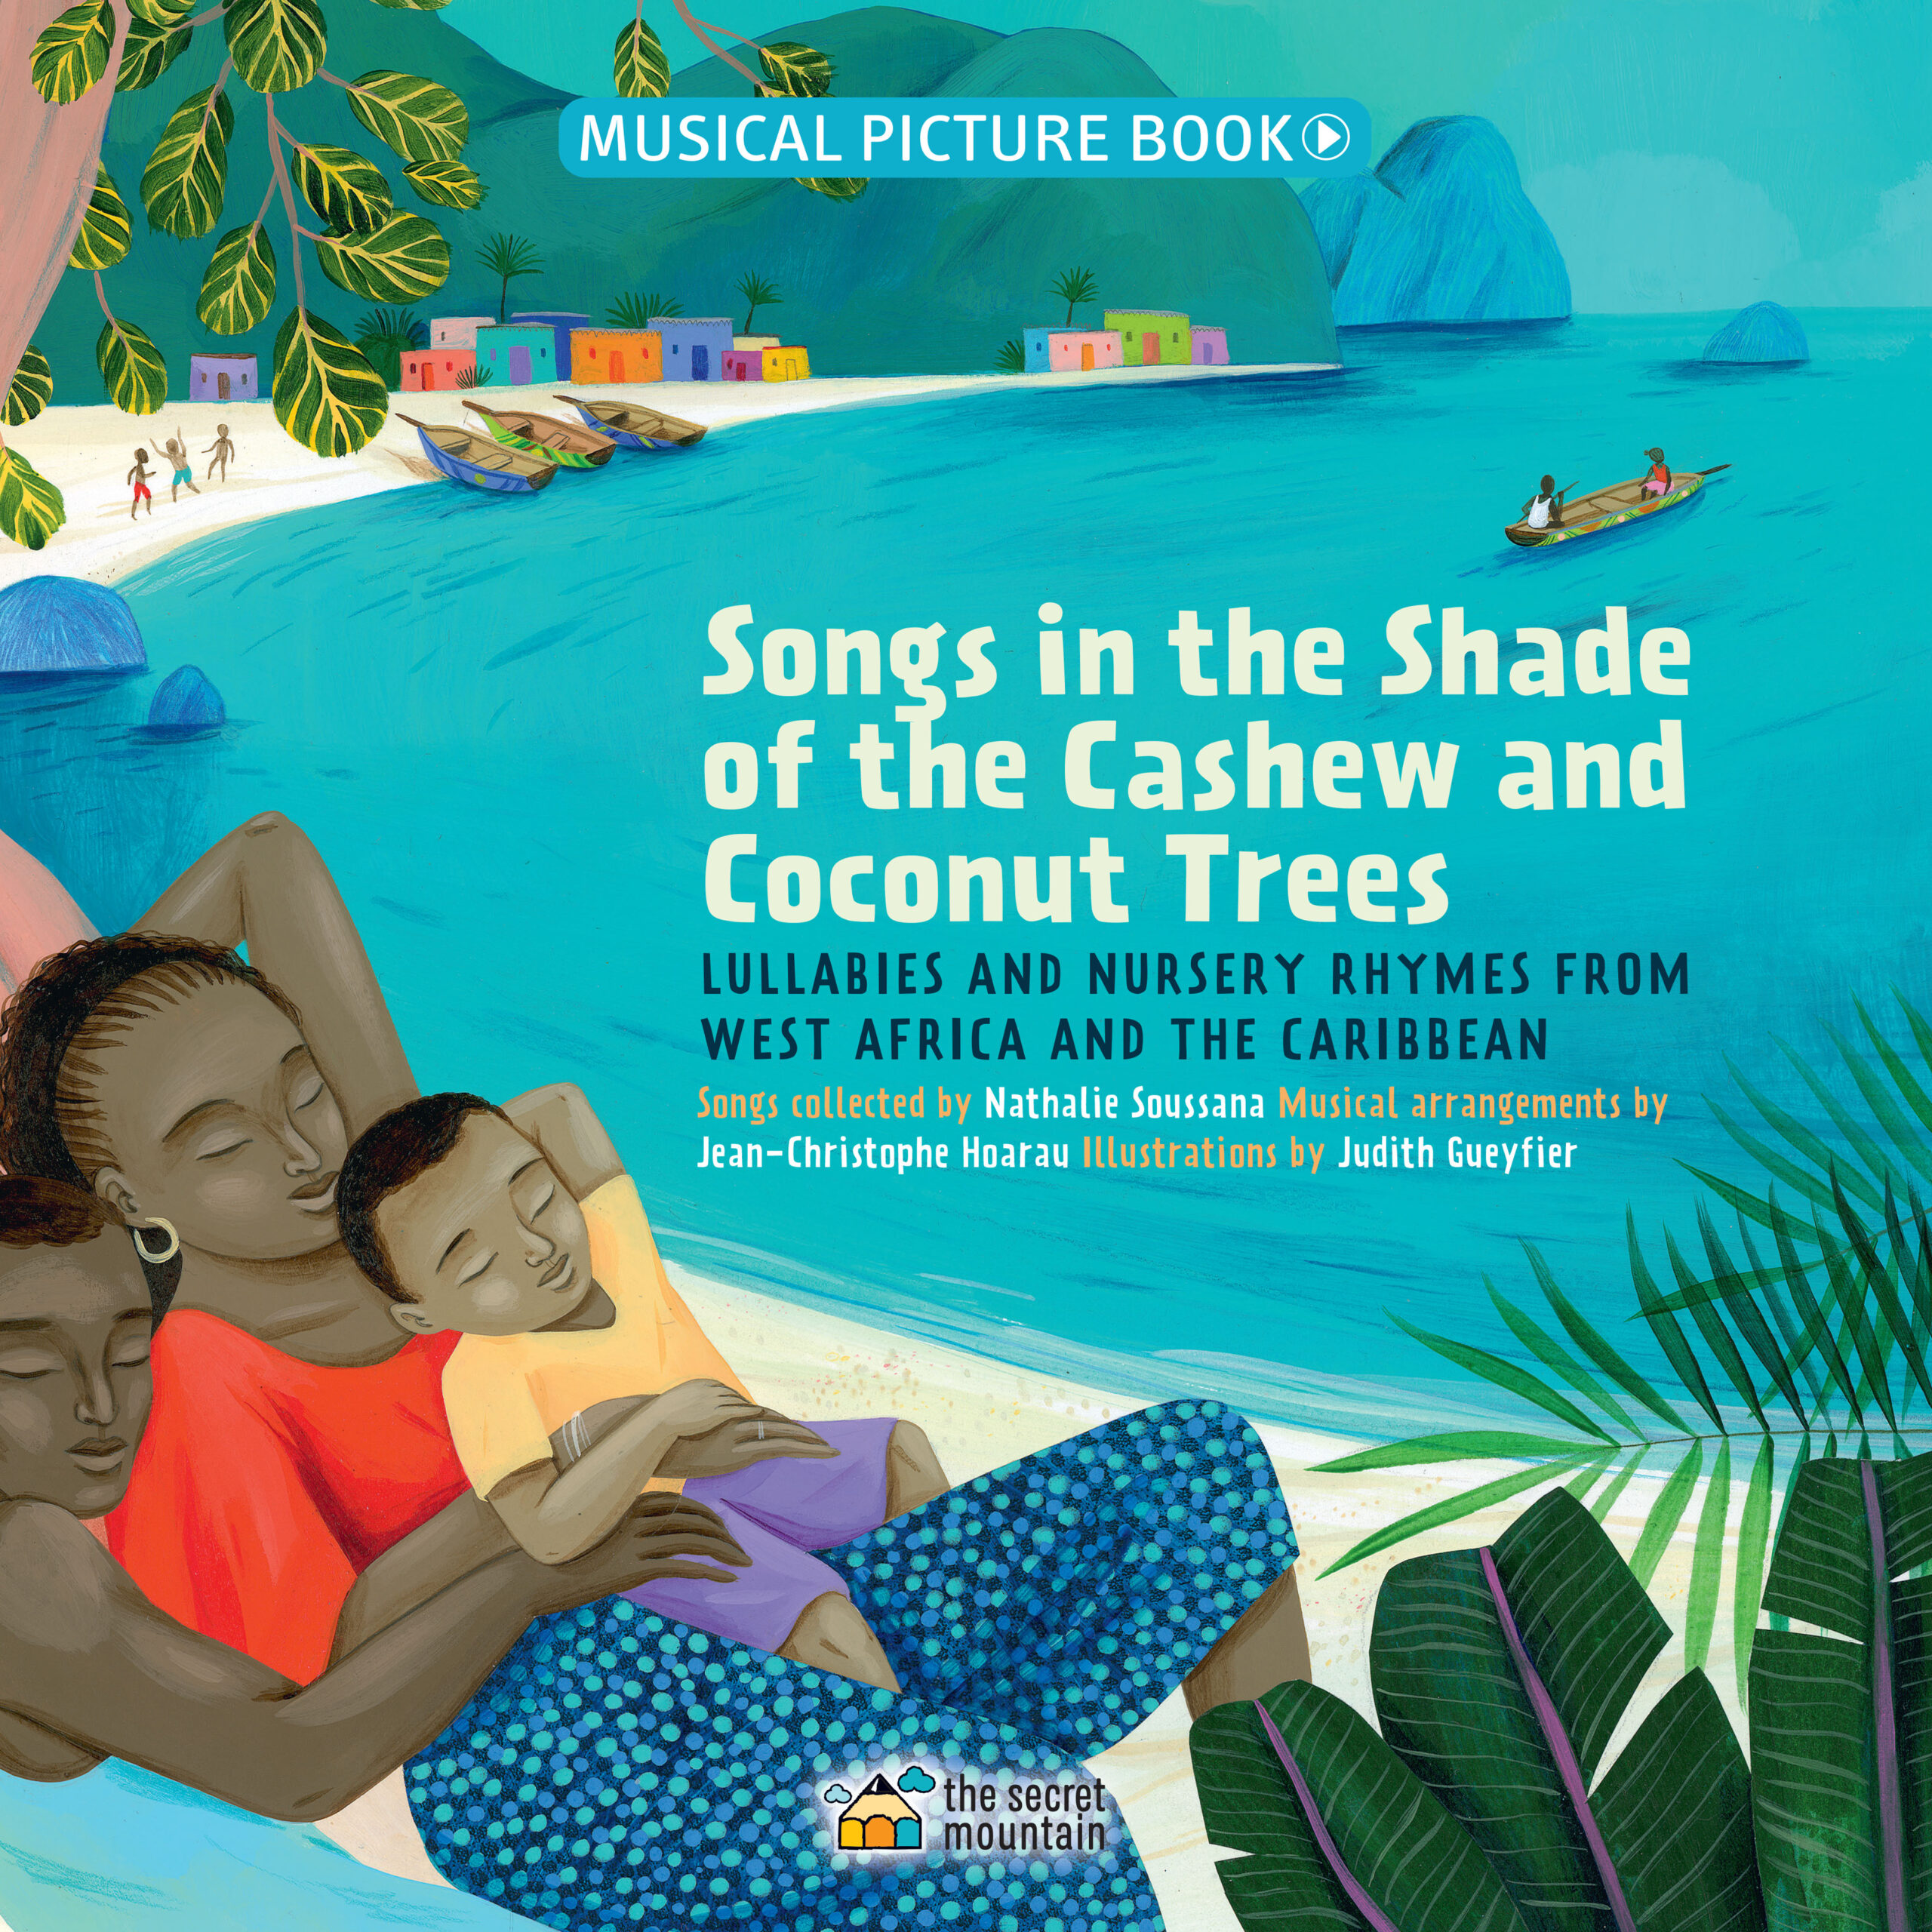 Songs in the Shade of the Cashew and Coconut Trees, Lullabies and Nursery Rhymes from West Africa and the Caribbean